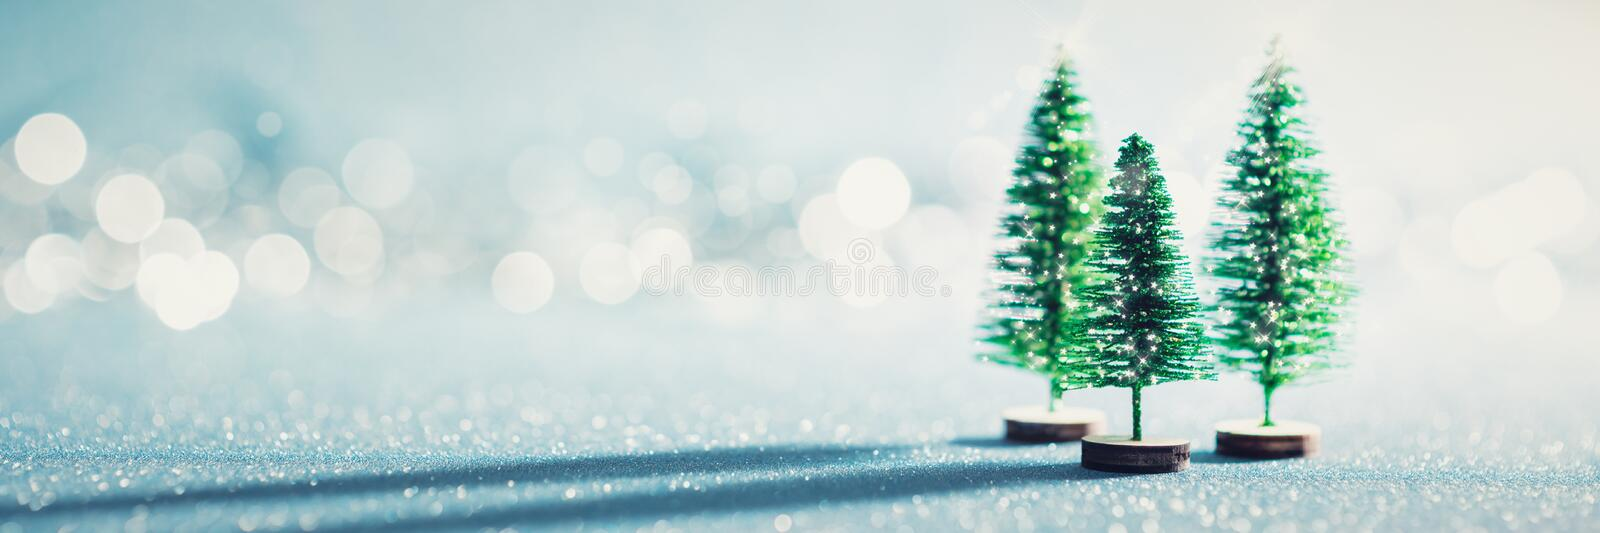 Magical miniature winter wonderland banner. Evergreen christmas trees on shiny blue background. stock image